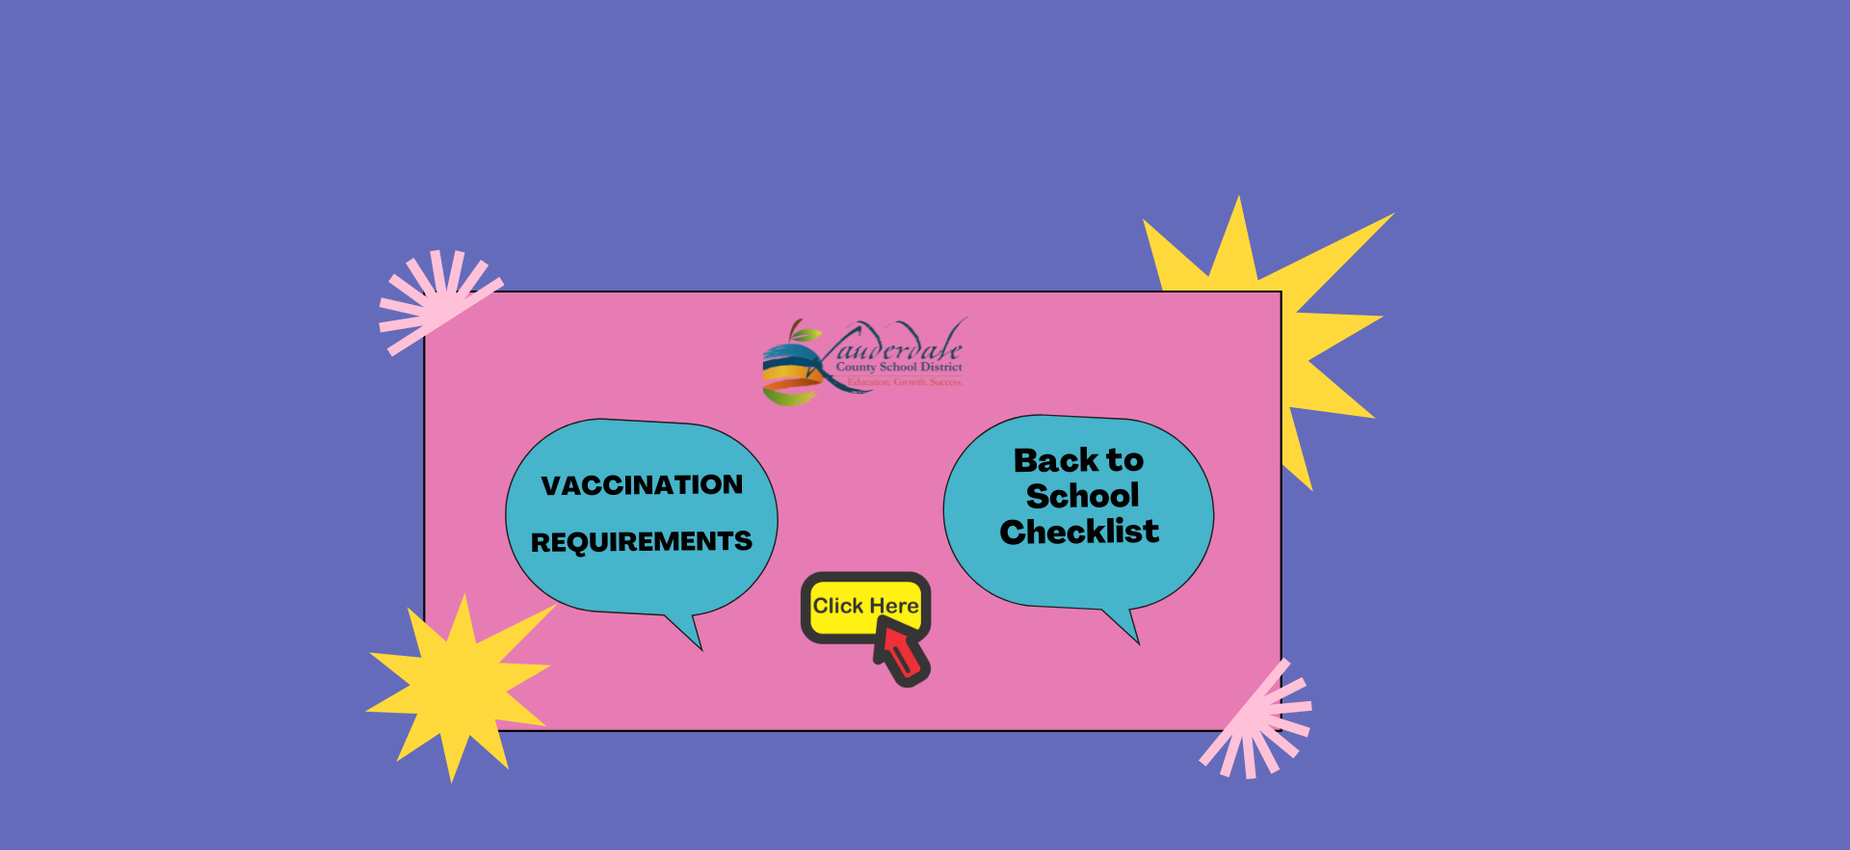 Vaccination Requirements Graphic